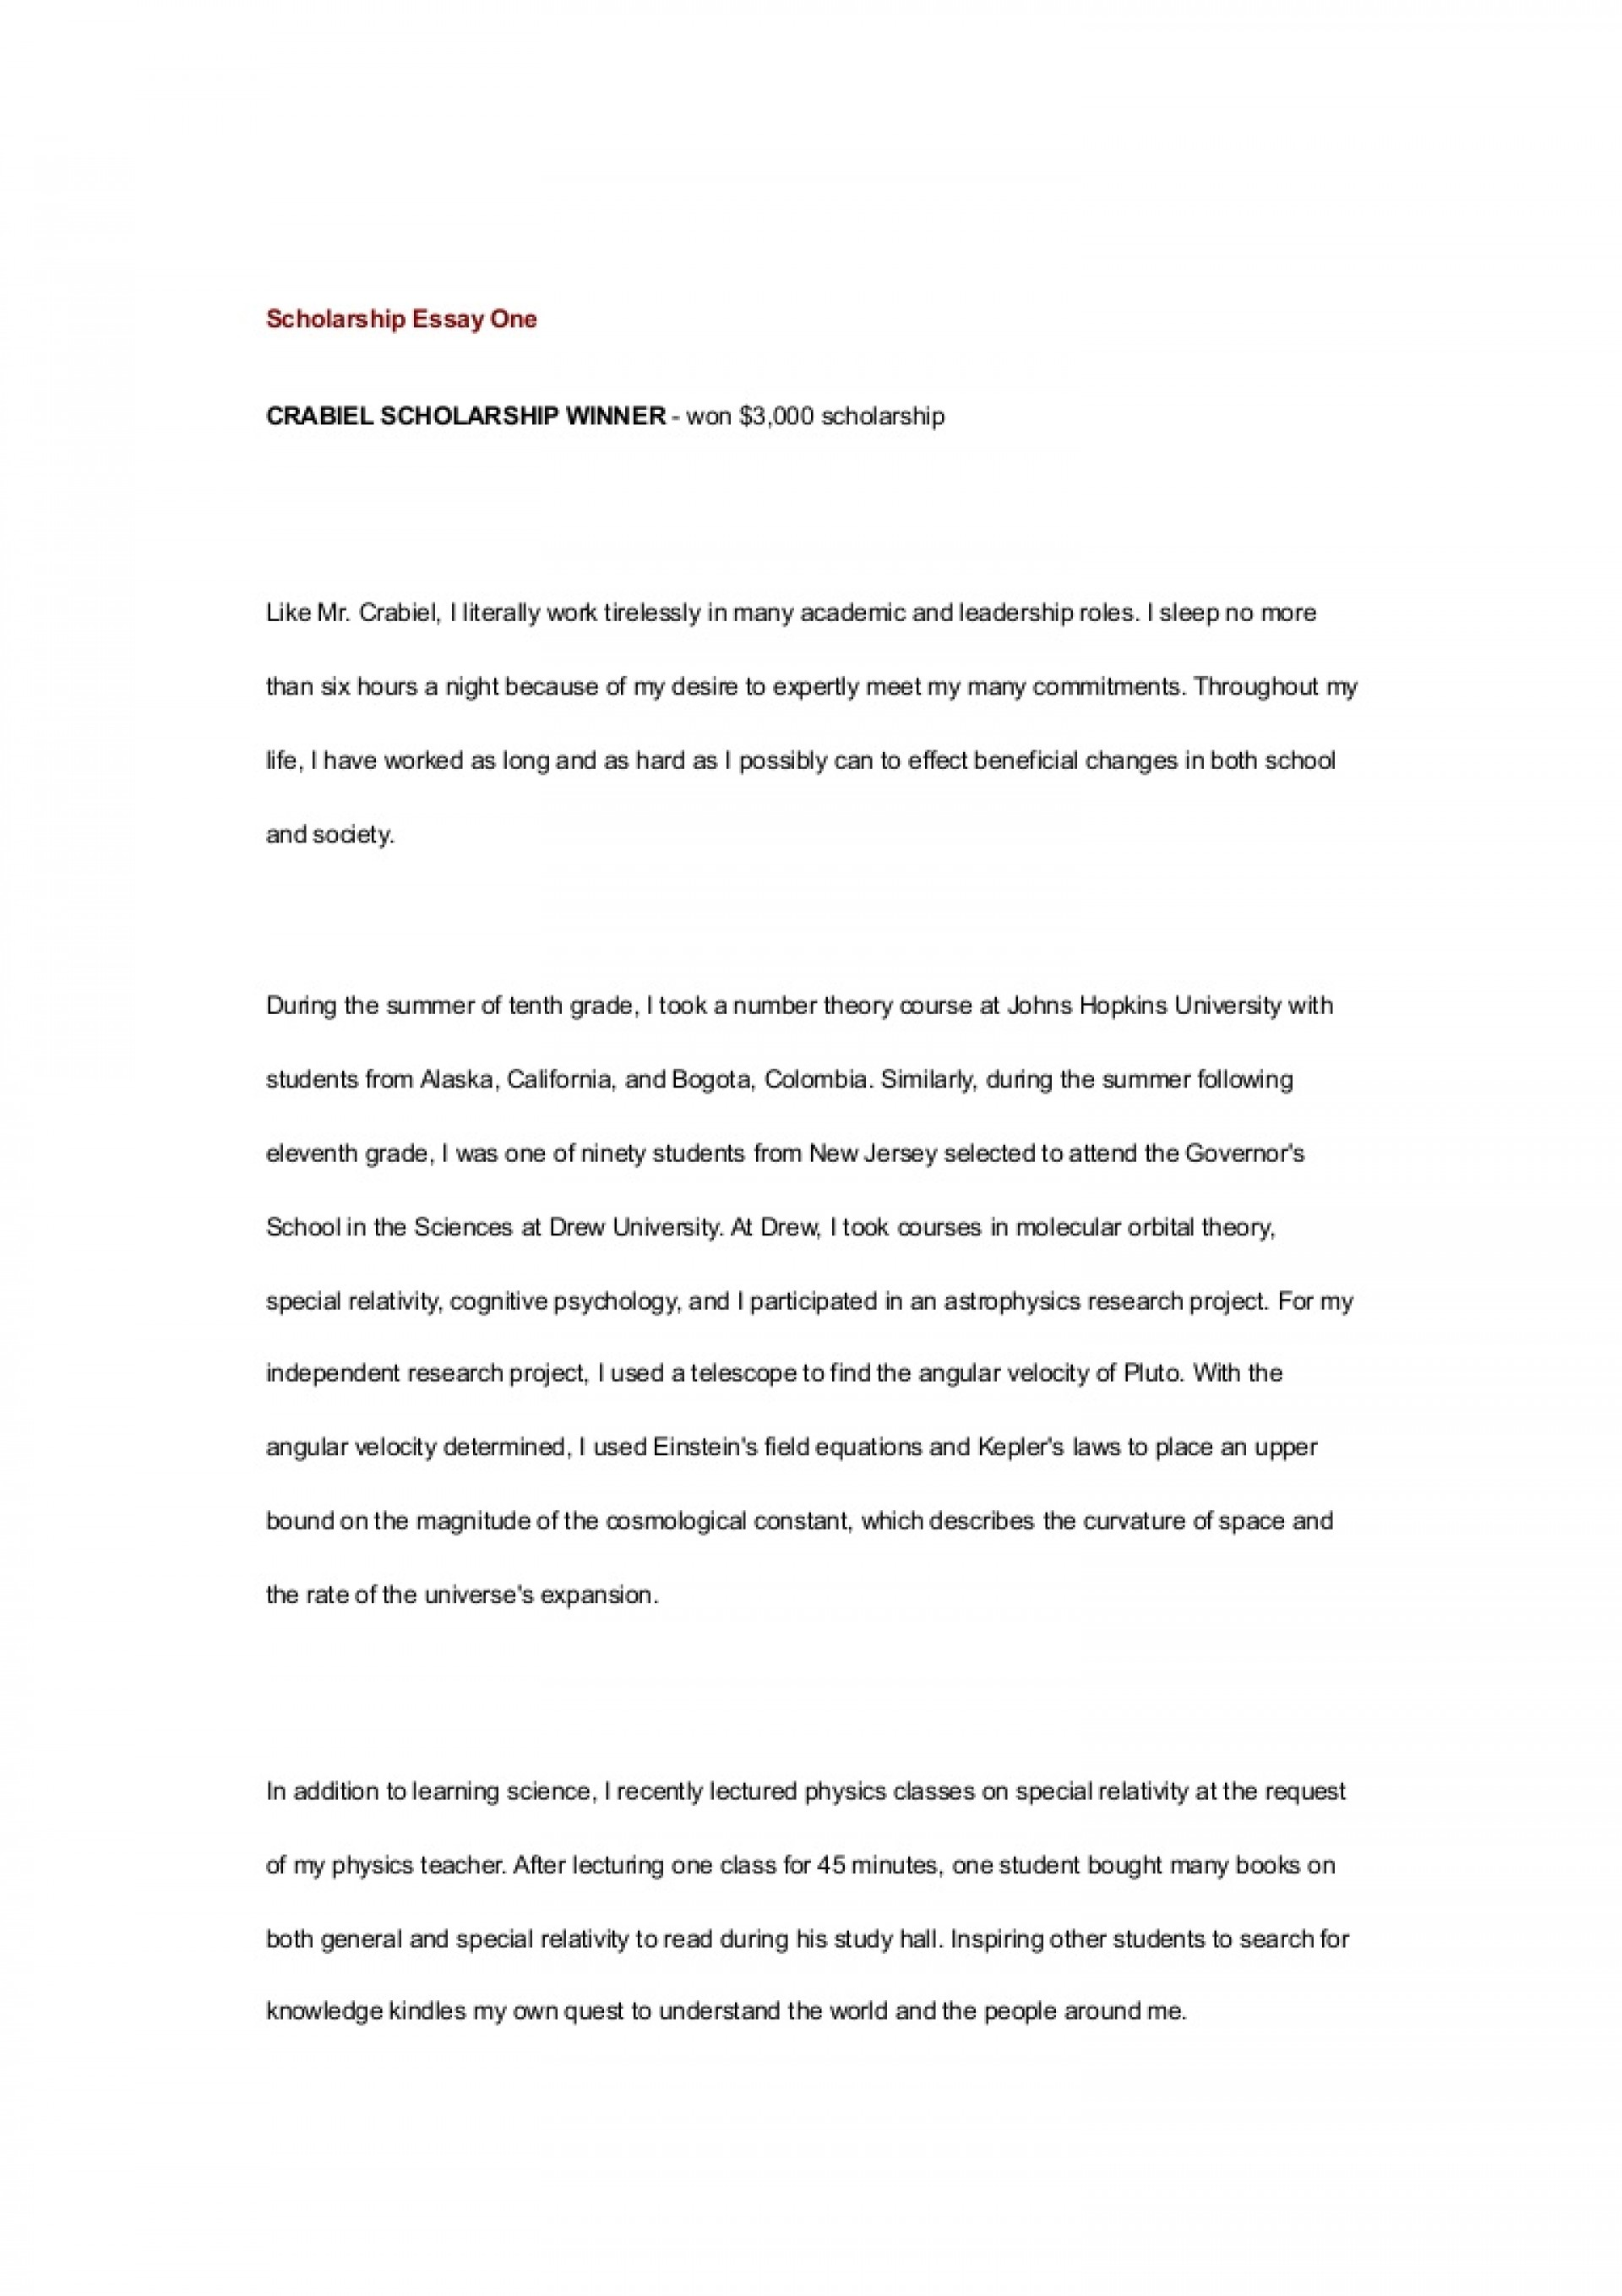 005 College Scholarship Essays Scholarshipessayone Phpapp01 Thumbnail Rare Essay Examples About Yourself Question 1920